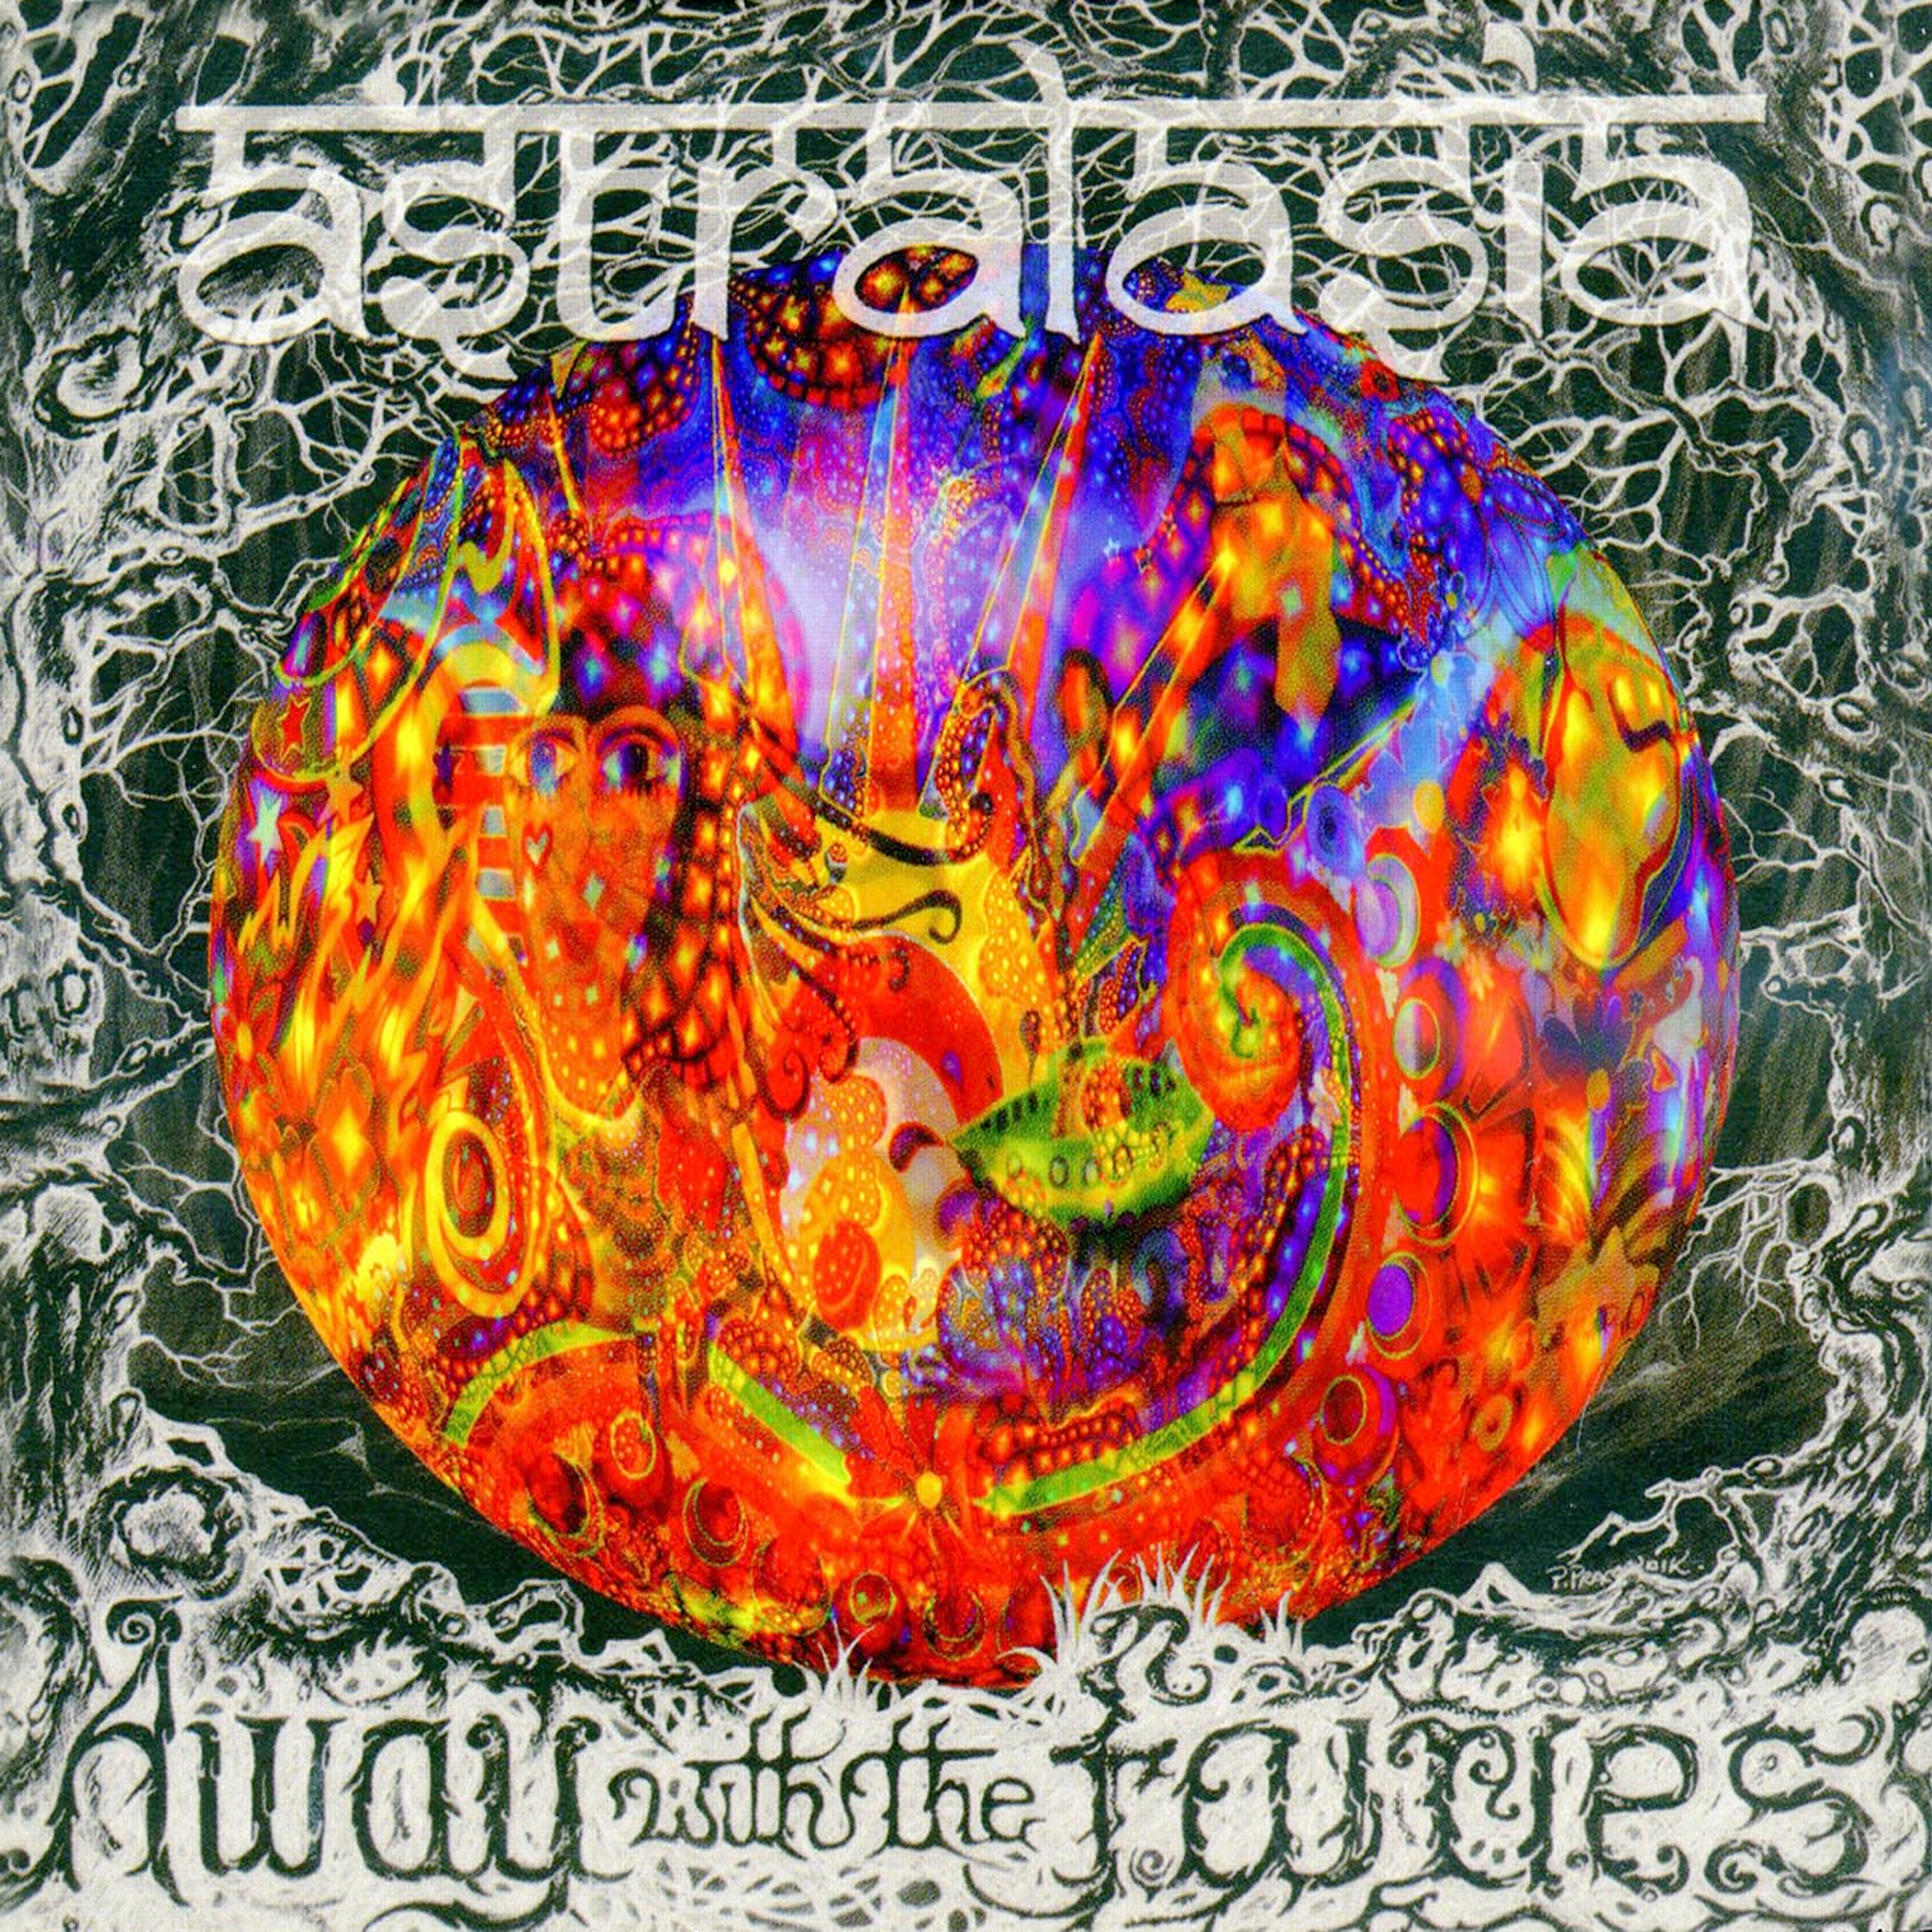 Astralasia - Away With the Fairies